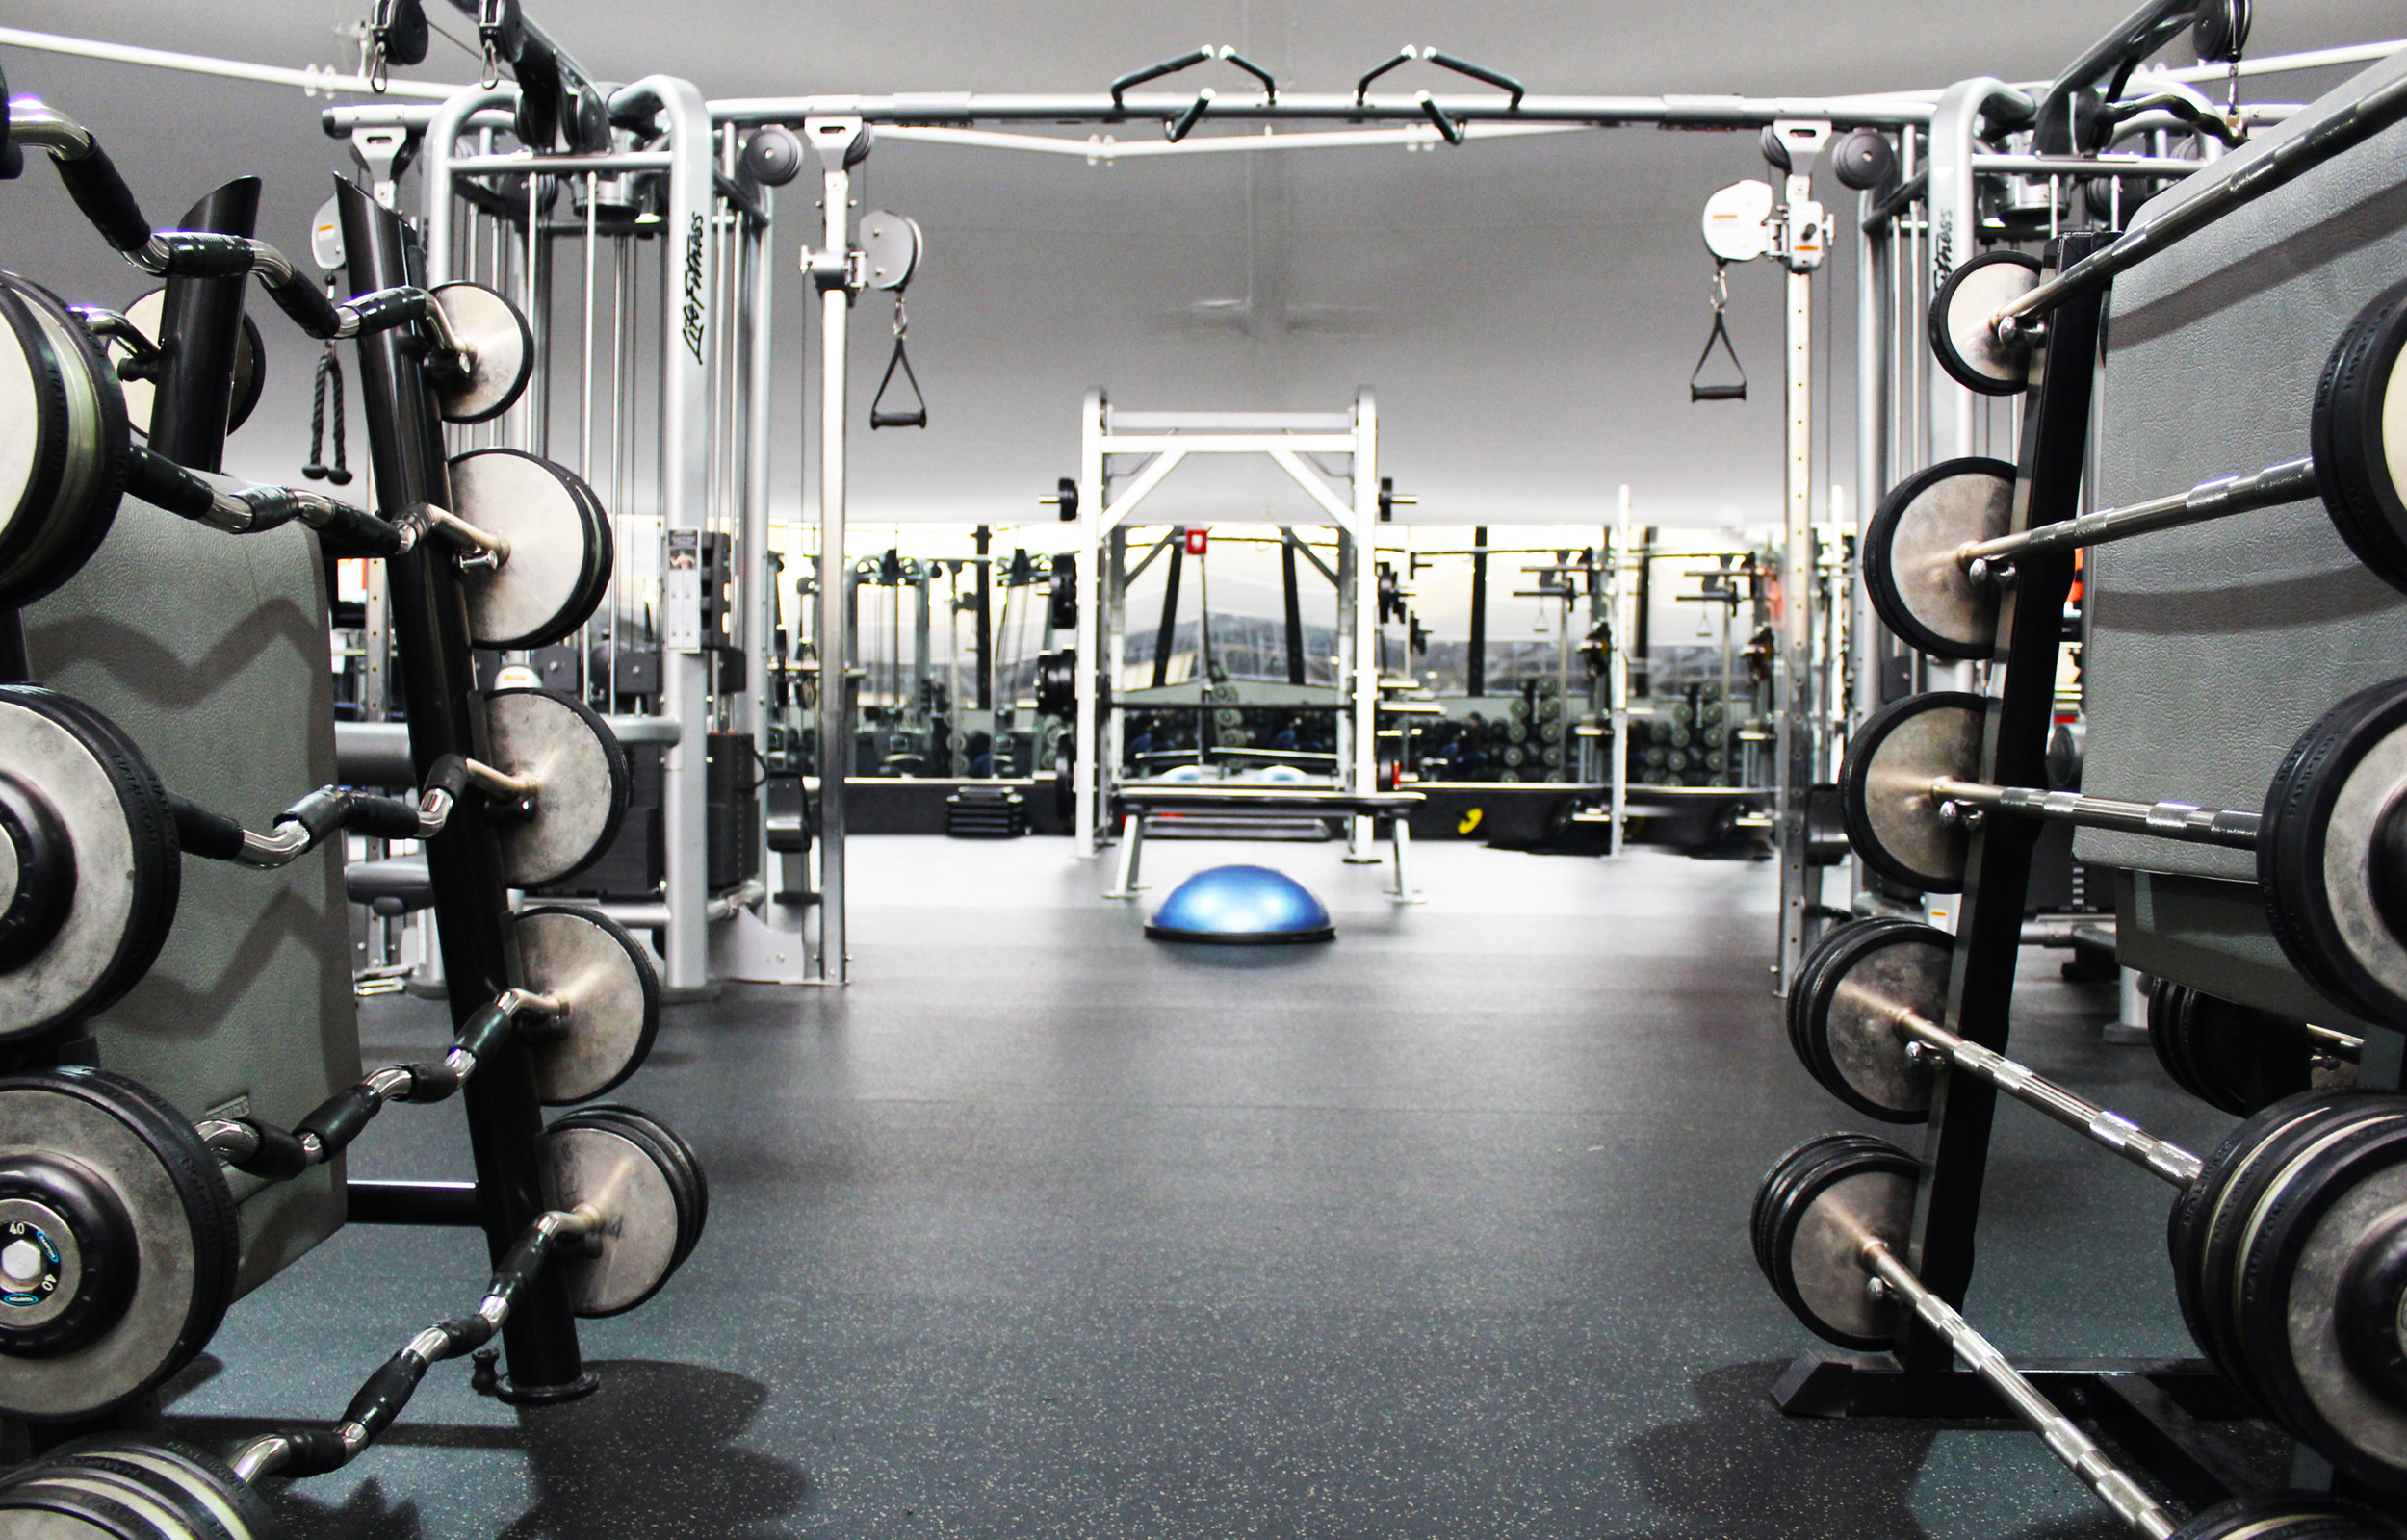 Weight Room  - featuring weighted bars and crossover station